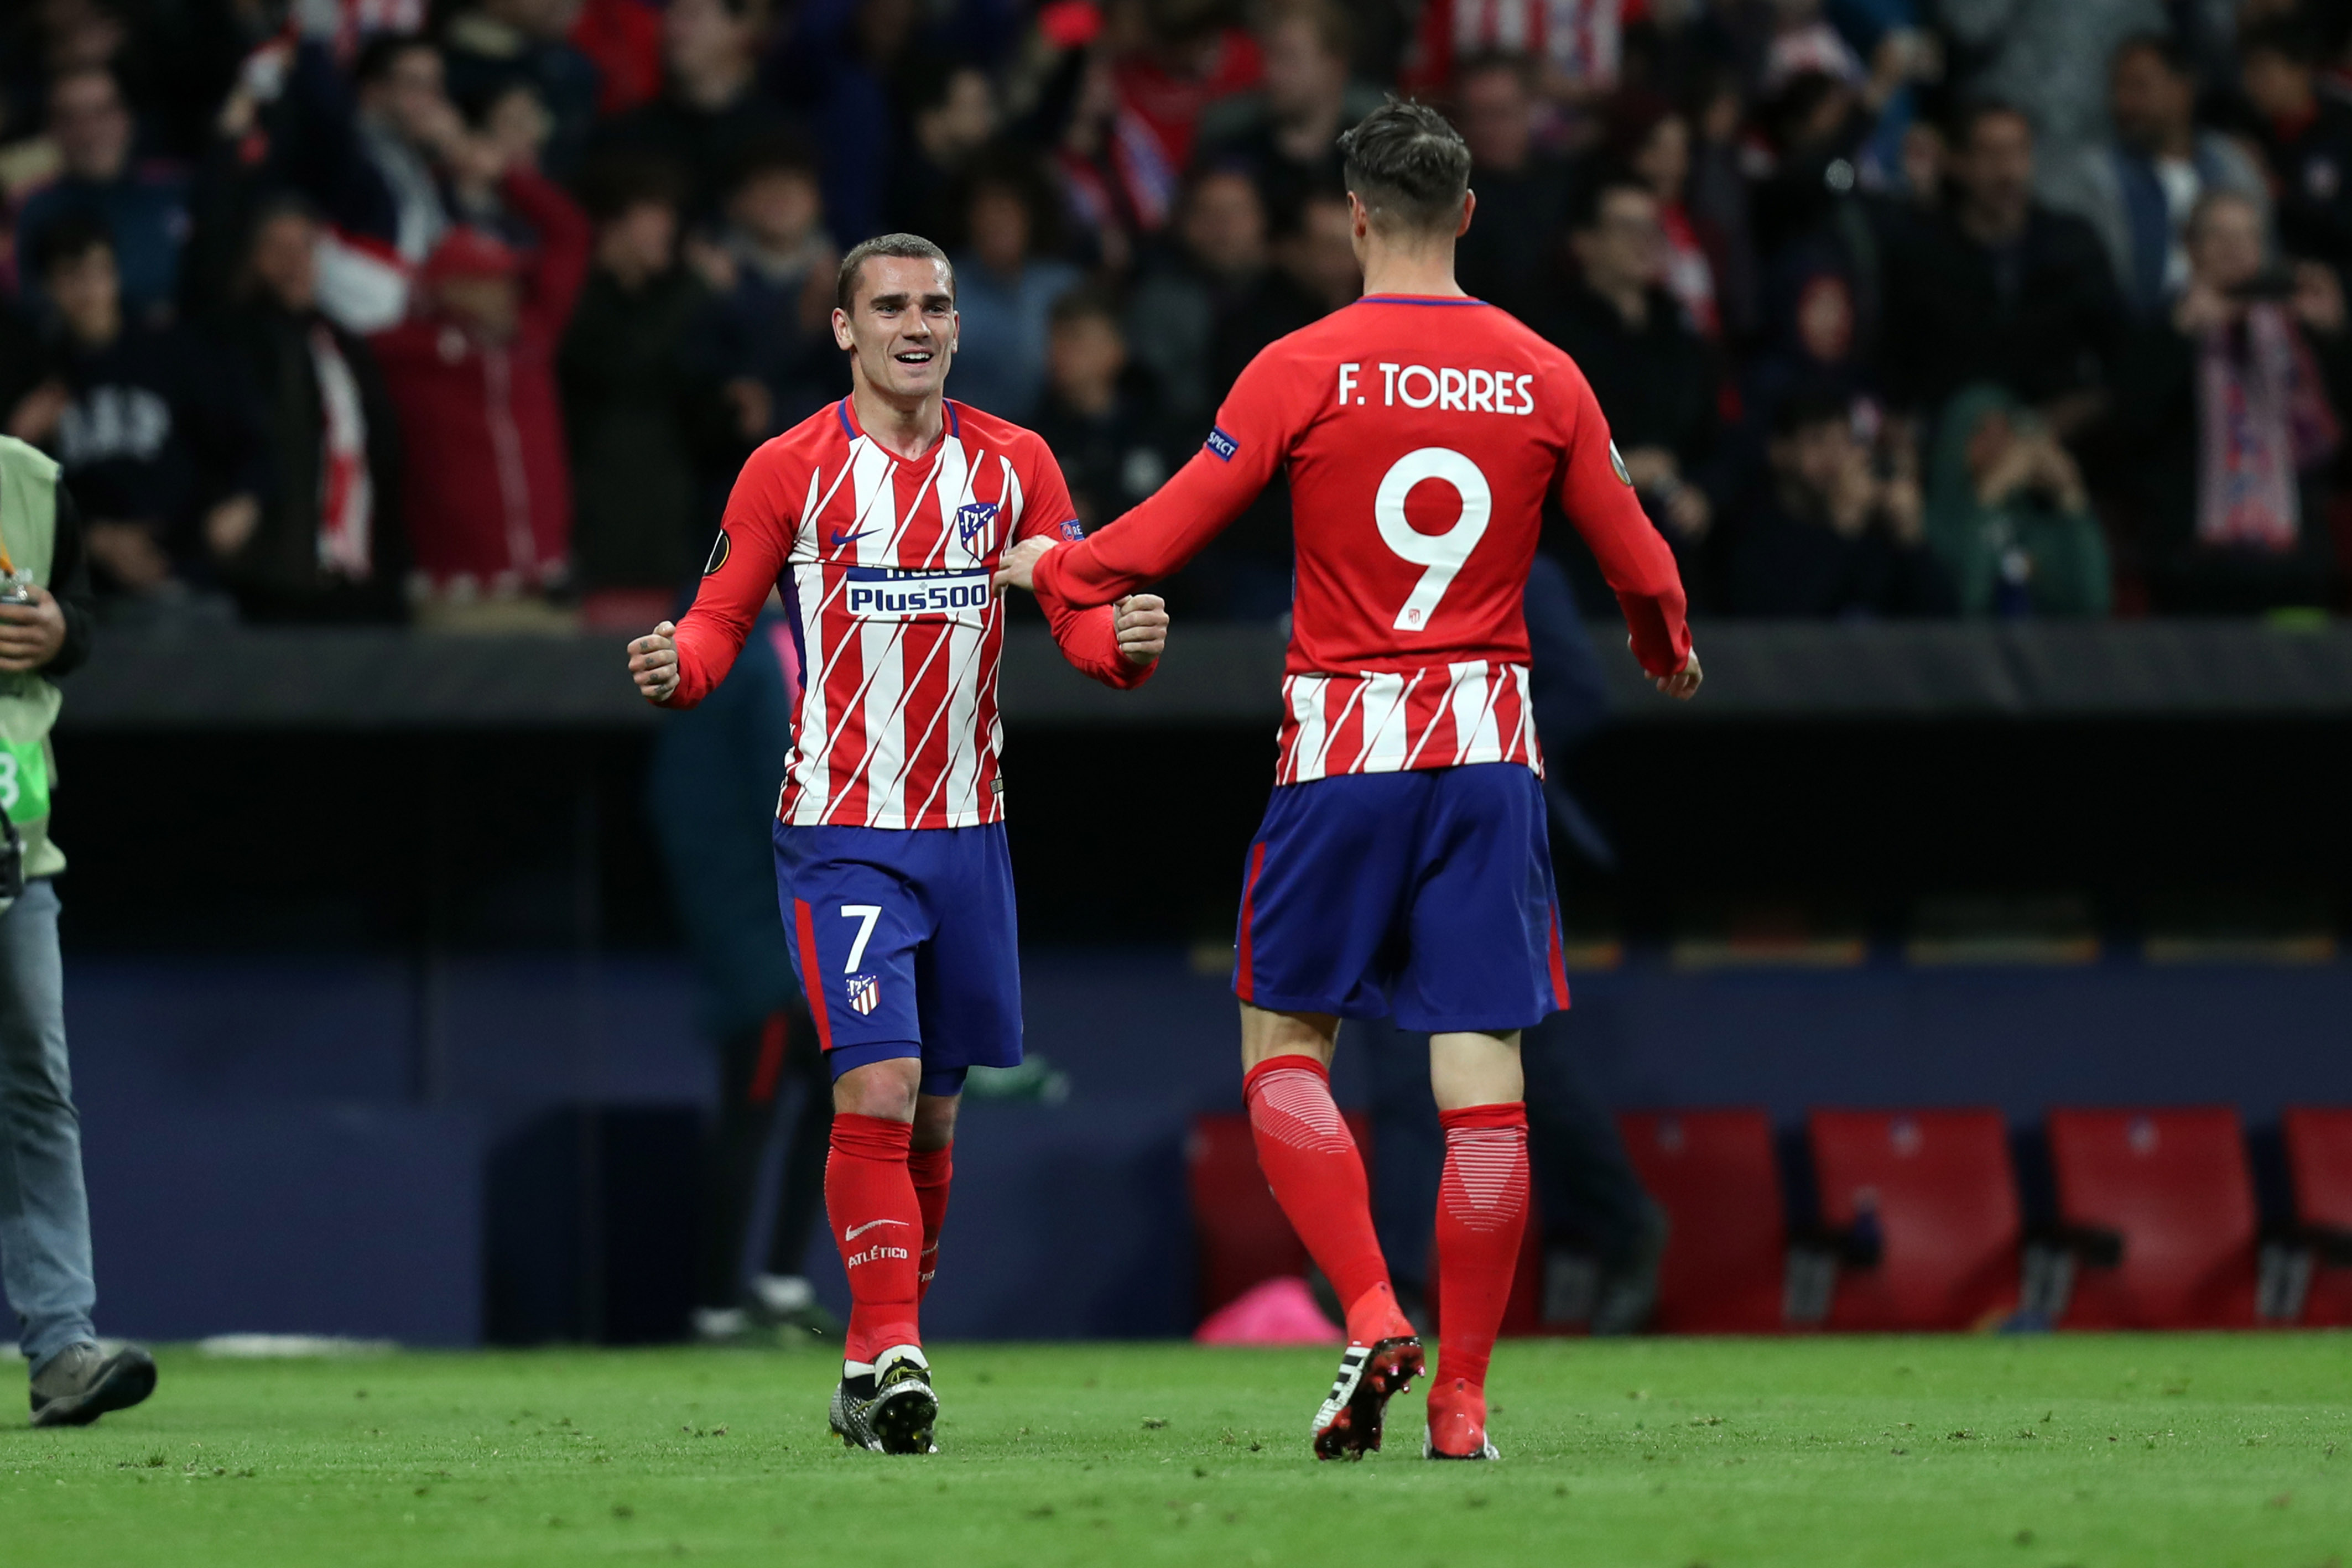 Griezmann and Torres celebrate. Image: PA